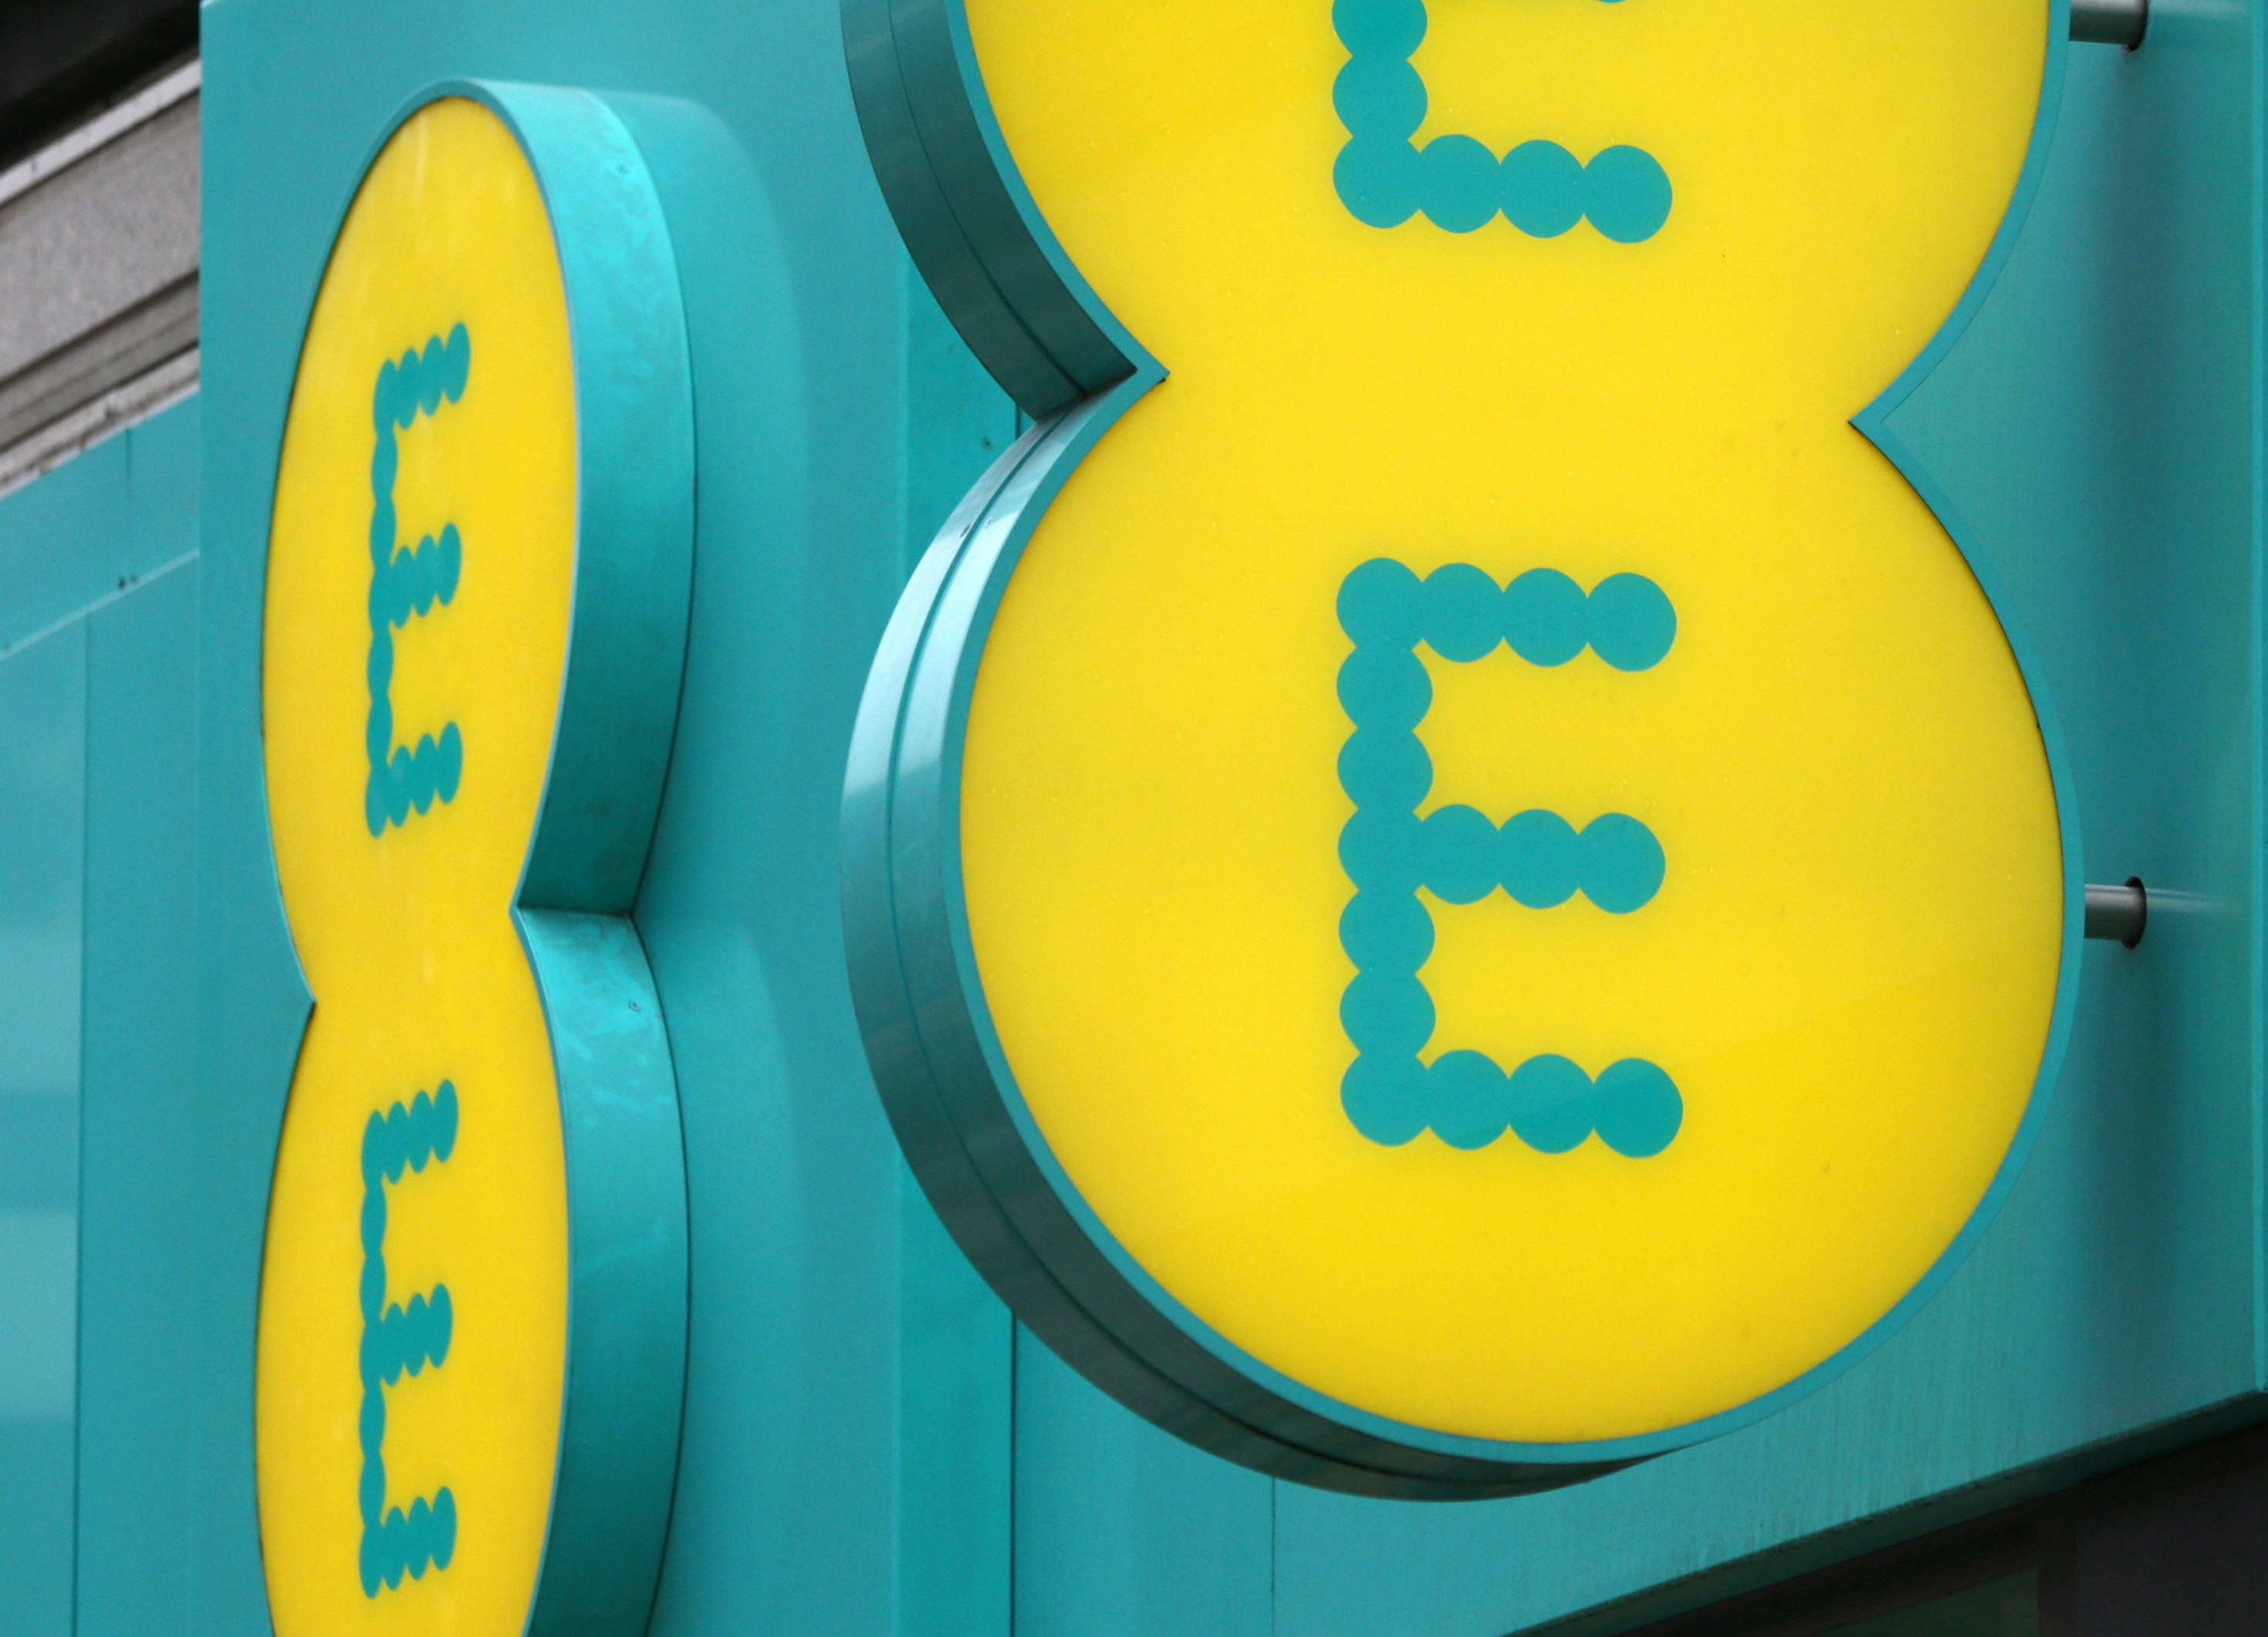 EE are launching 5G services at the end of the month